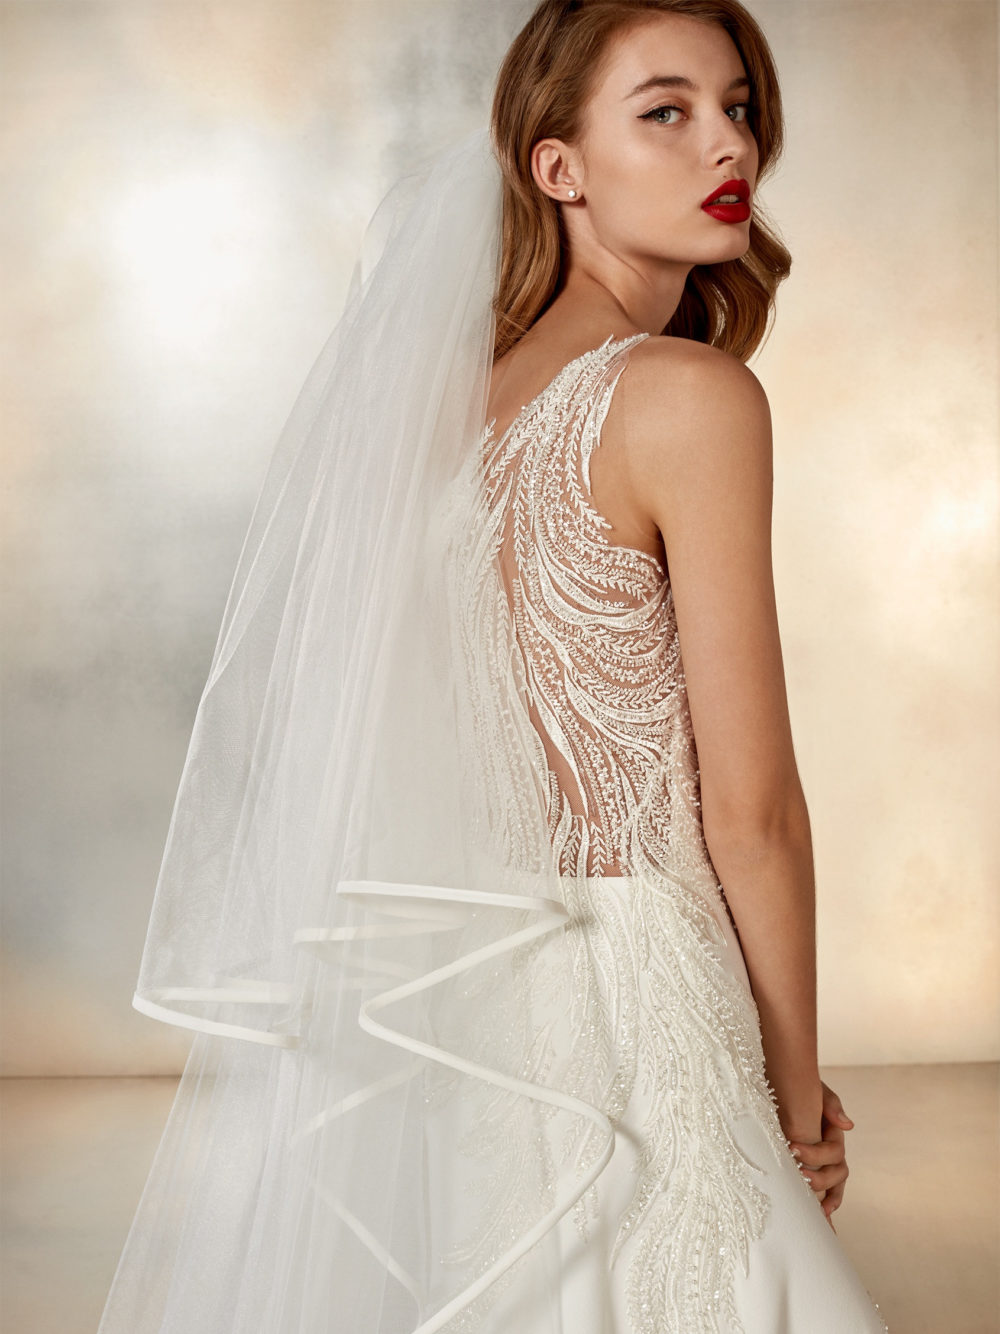 Pronovias Atelier Collection Moon Dance Wedding Gown Dress 2020 Right Side